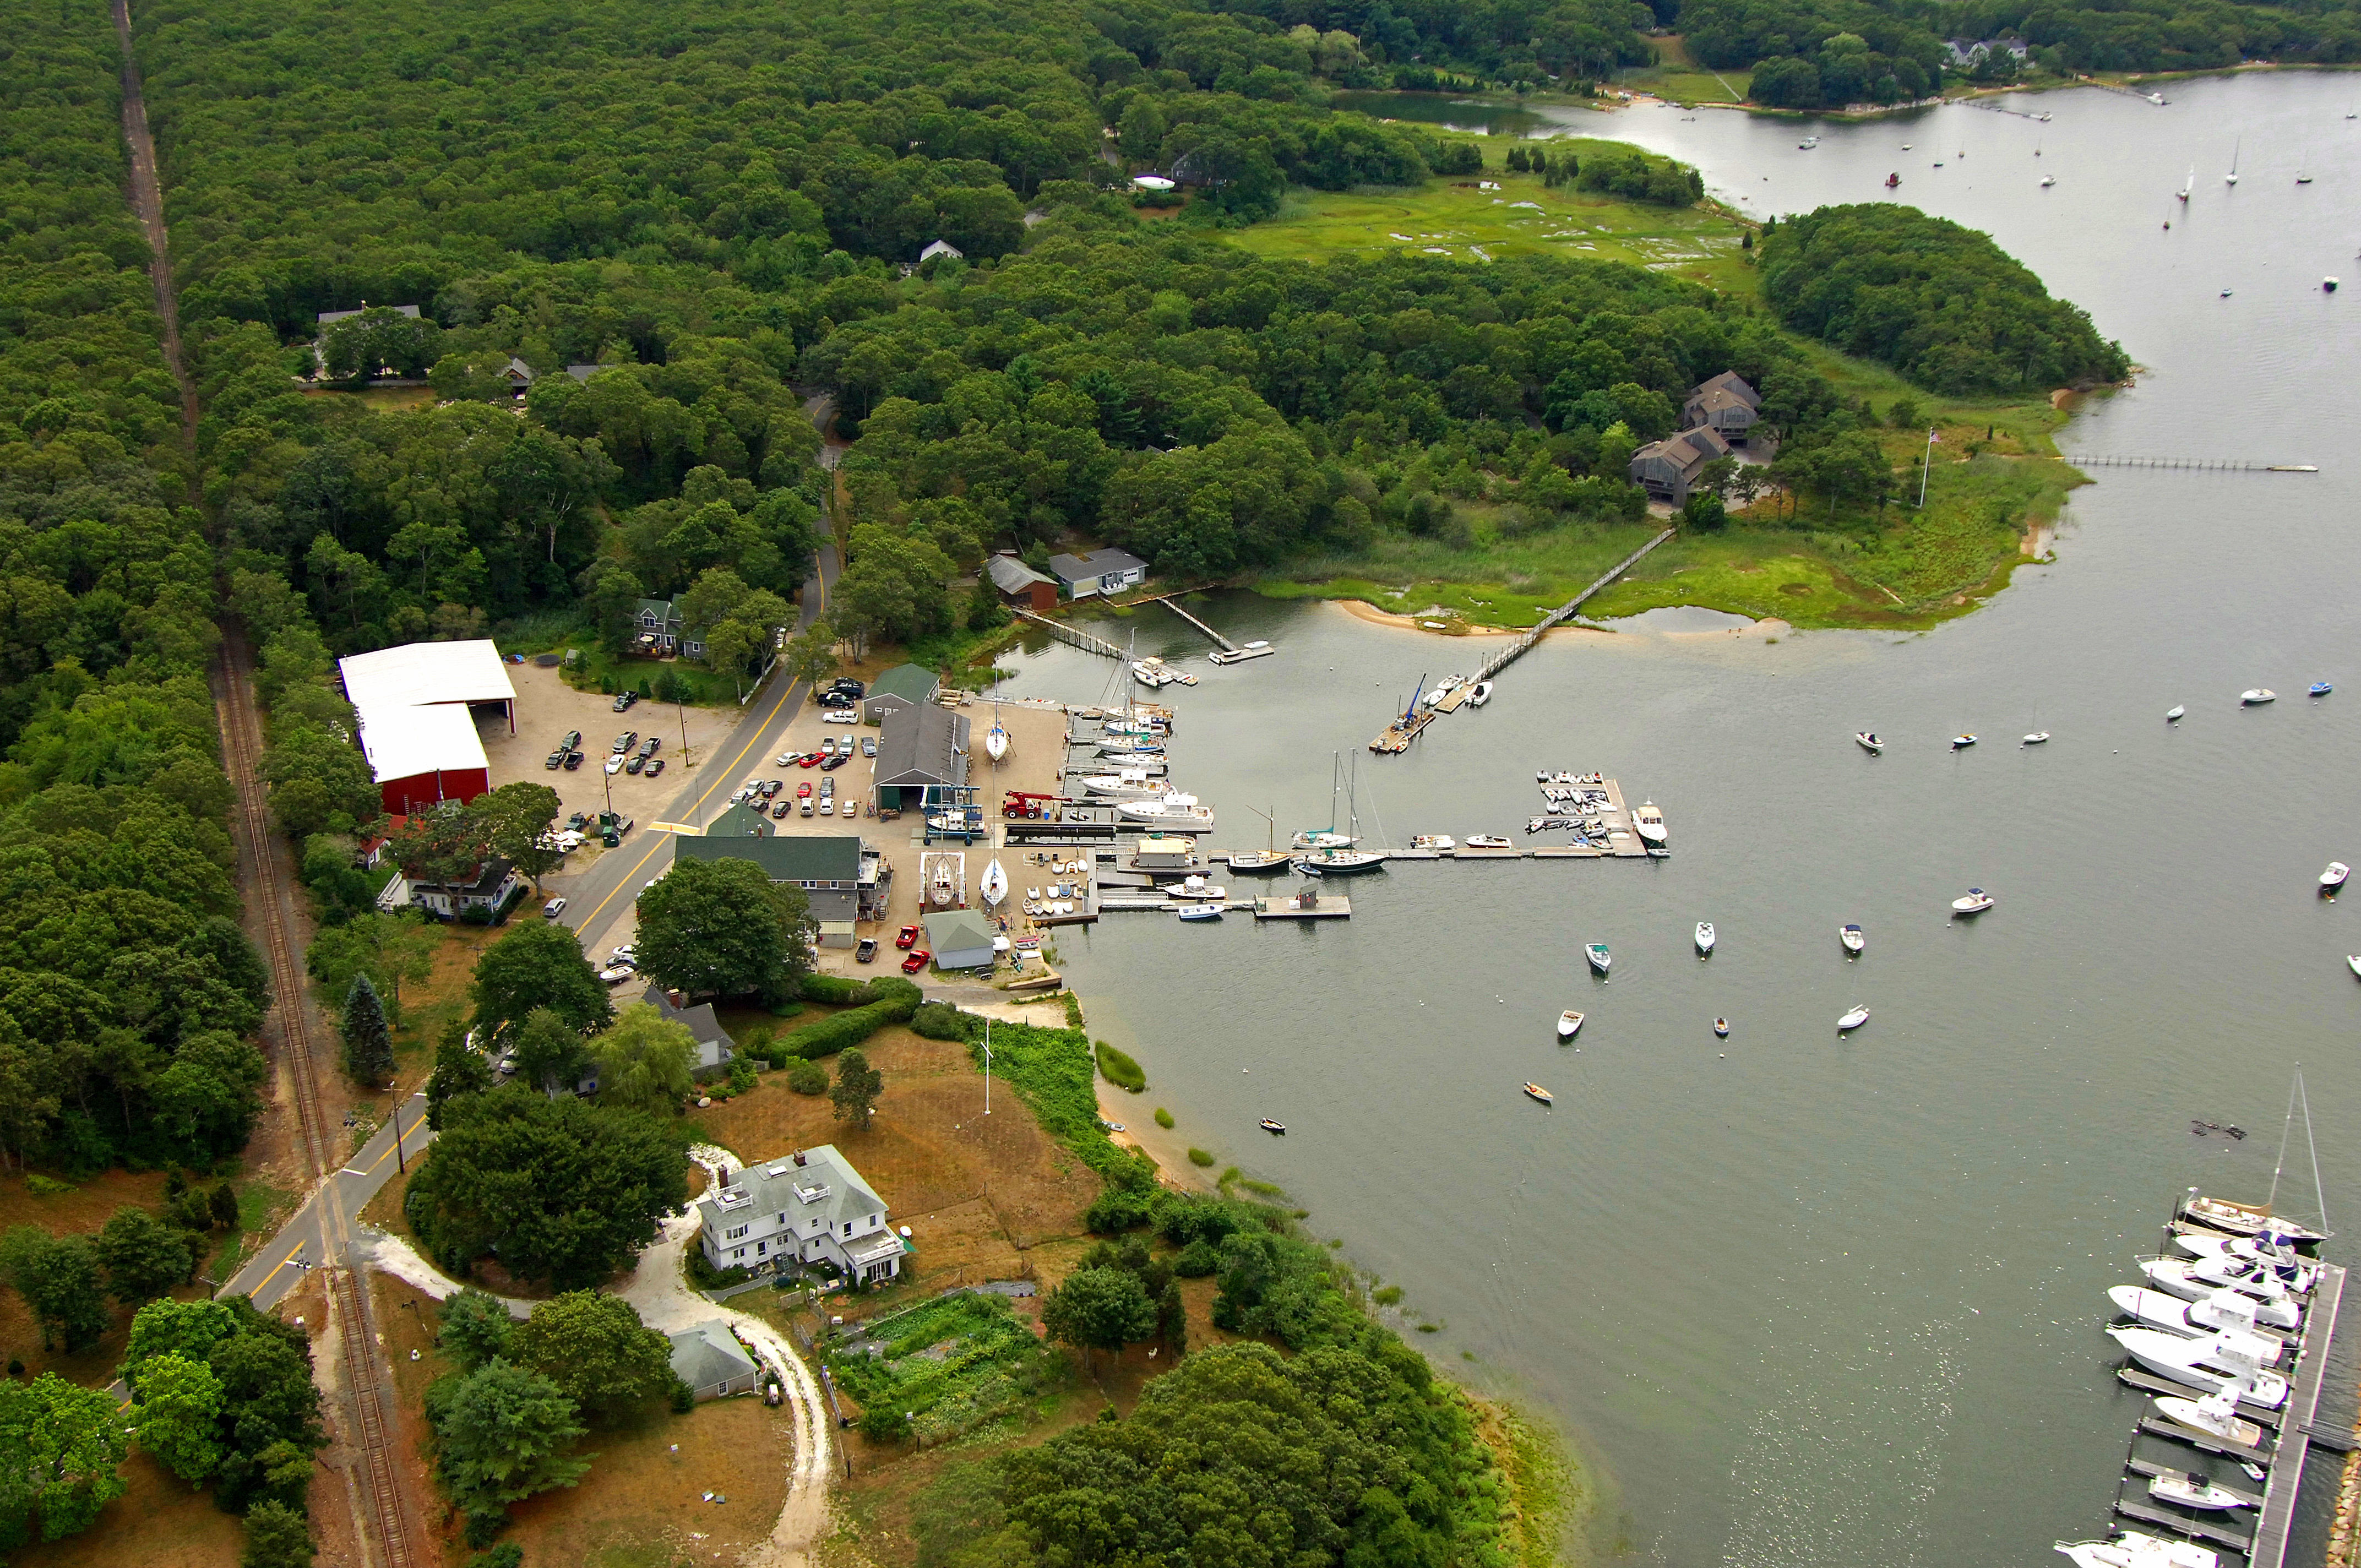 Parker's Boat Yard in Cataumet, MA, United States - Marina